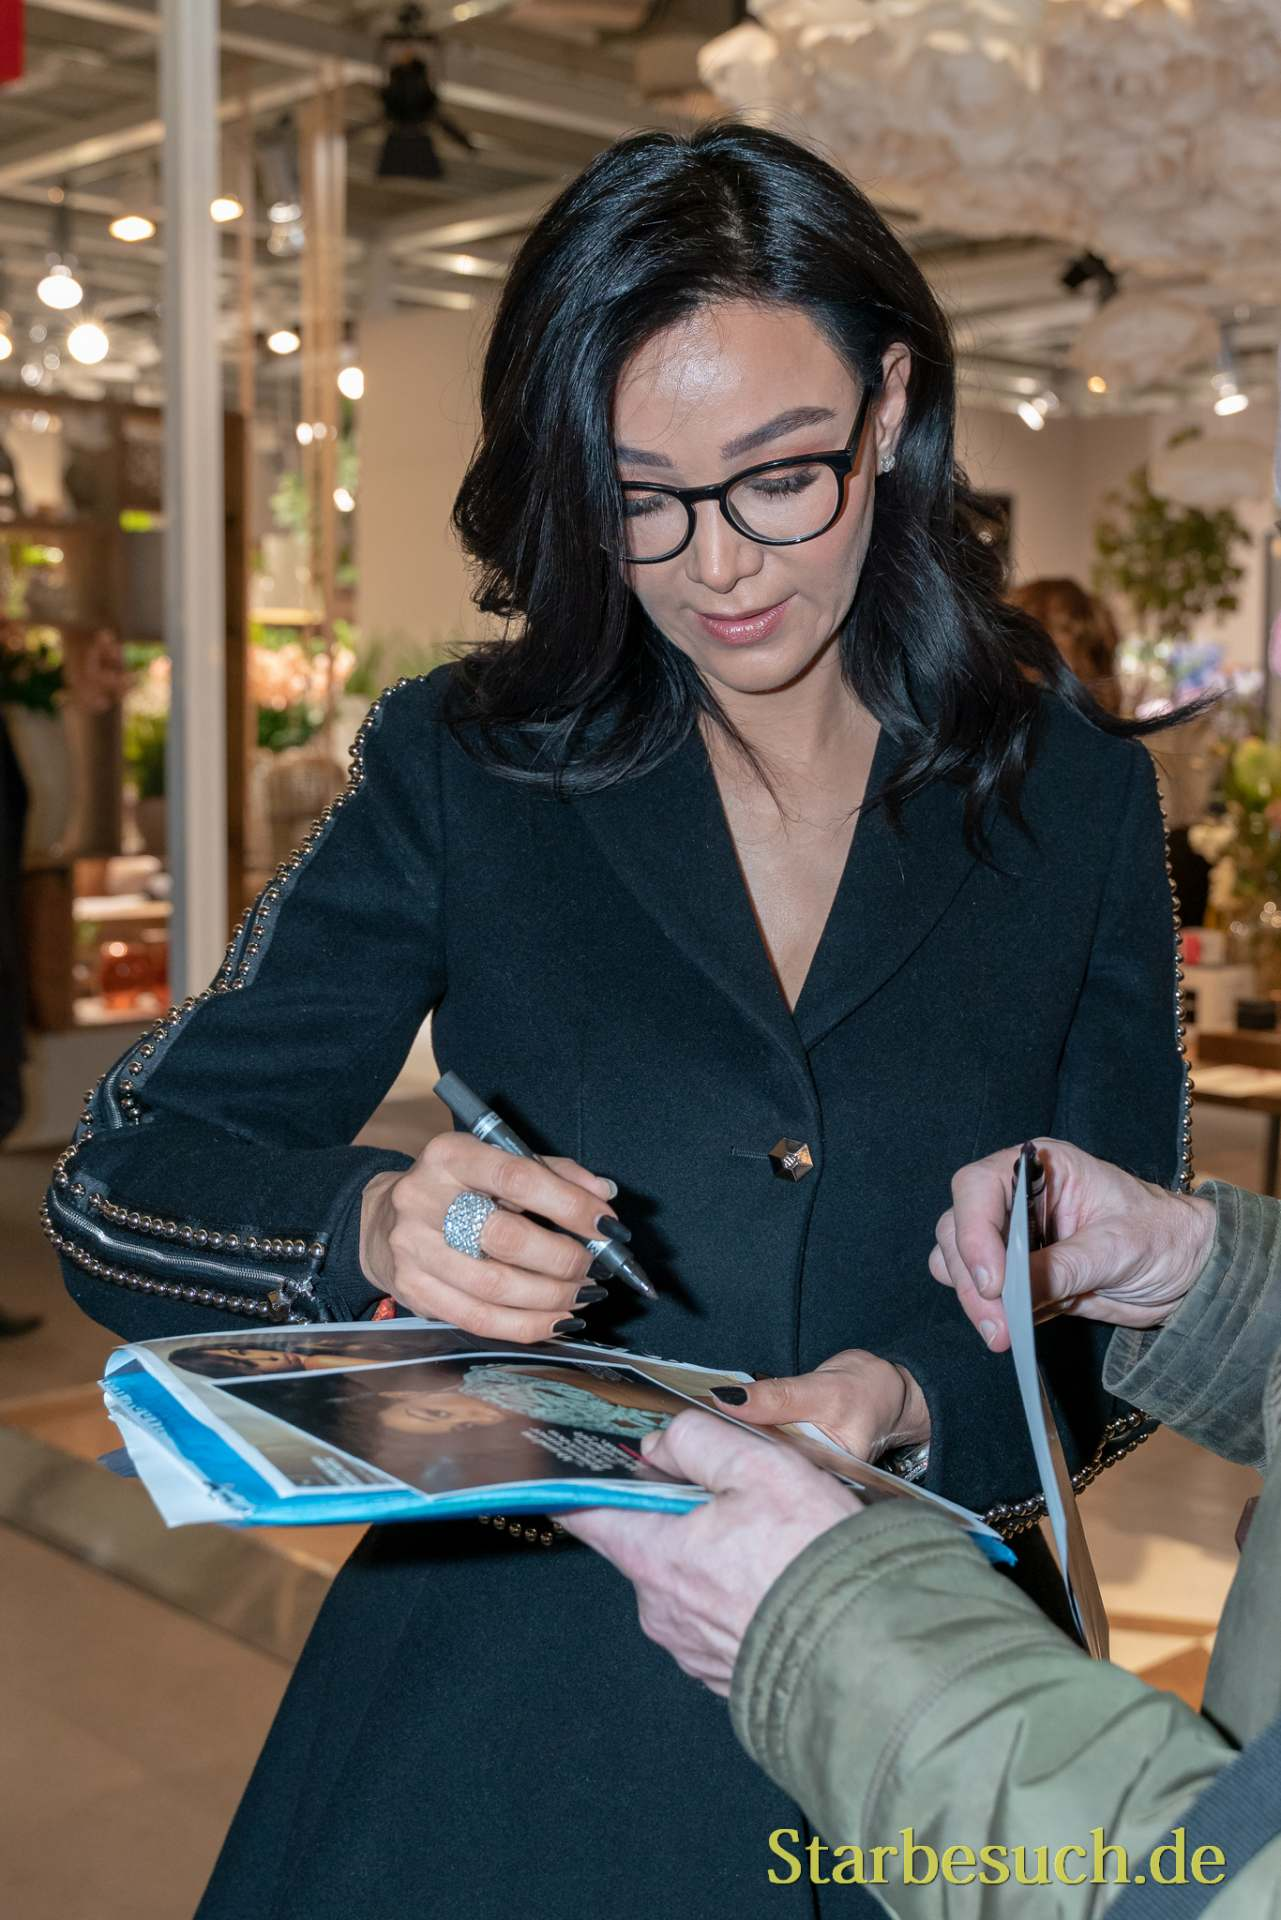 Frankfurt, Germany. 11th Feb 2019. Verona Pooth signing autographs at Ambiente trade fair 2019. Ambiente is a leading consumer goods trade fair with more than 4300 exhibitors and 130,000+ trade visitors.